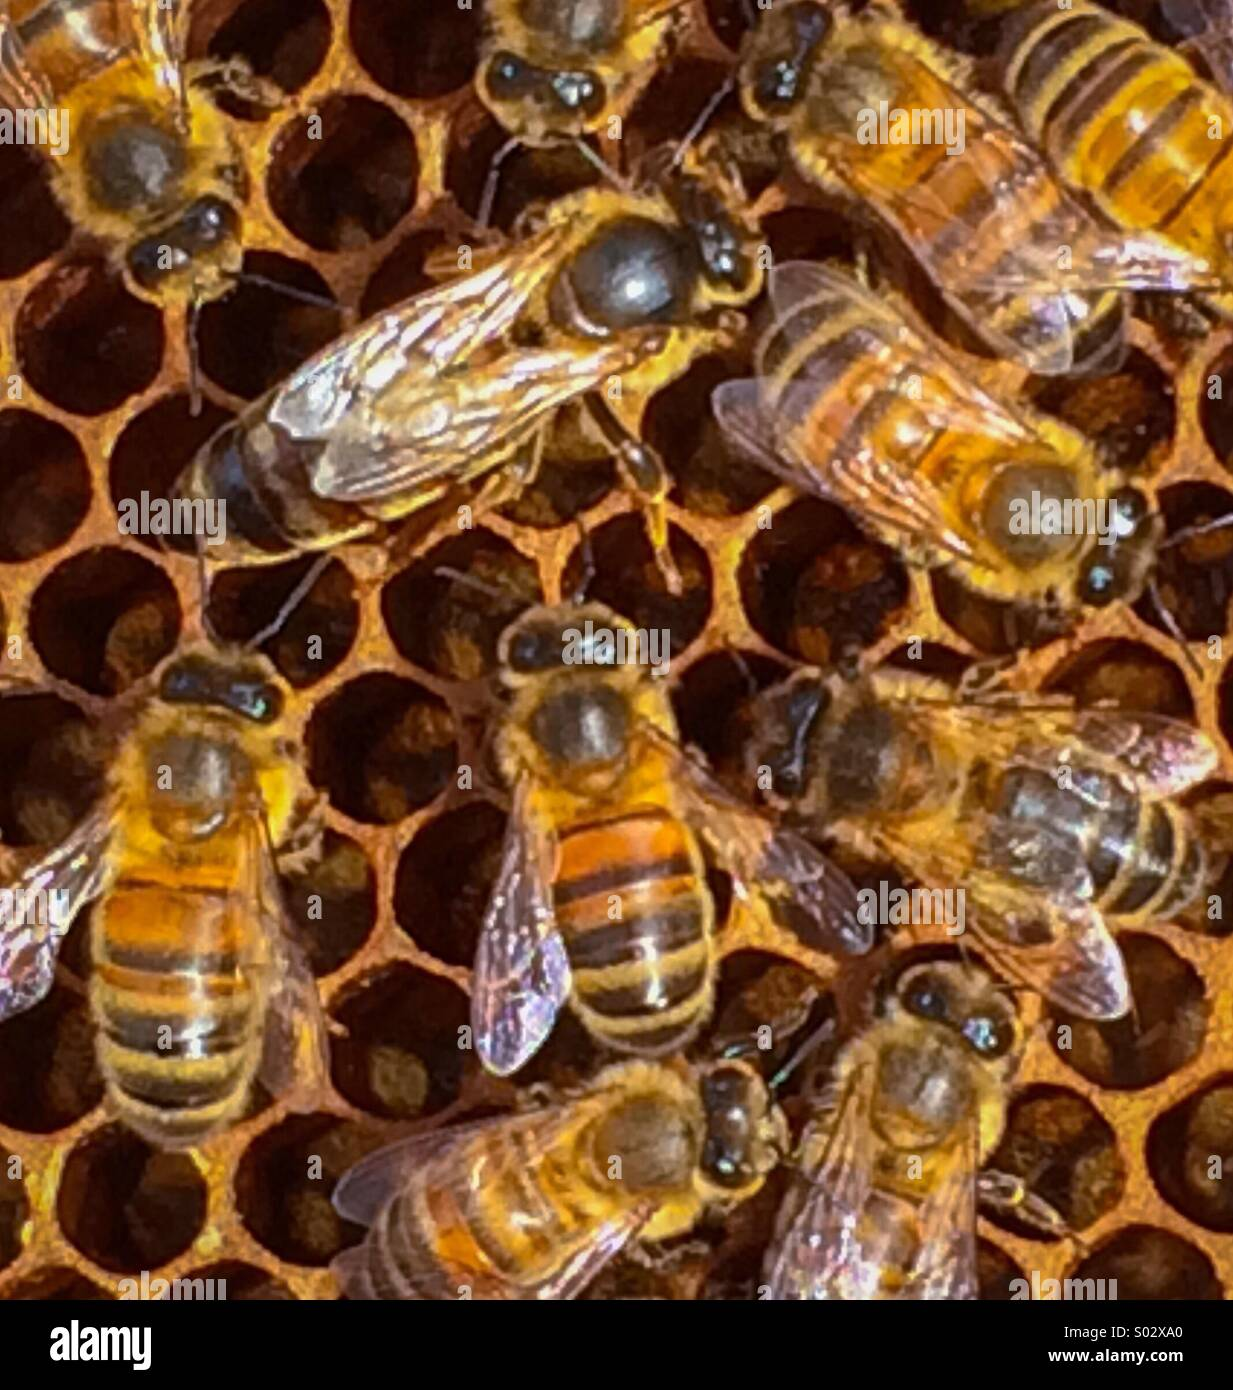 Queen bee in a hive surrounded by worker bees - Stock Image